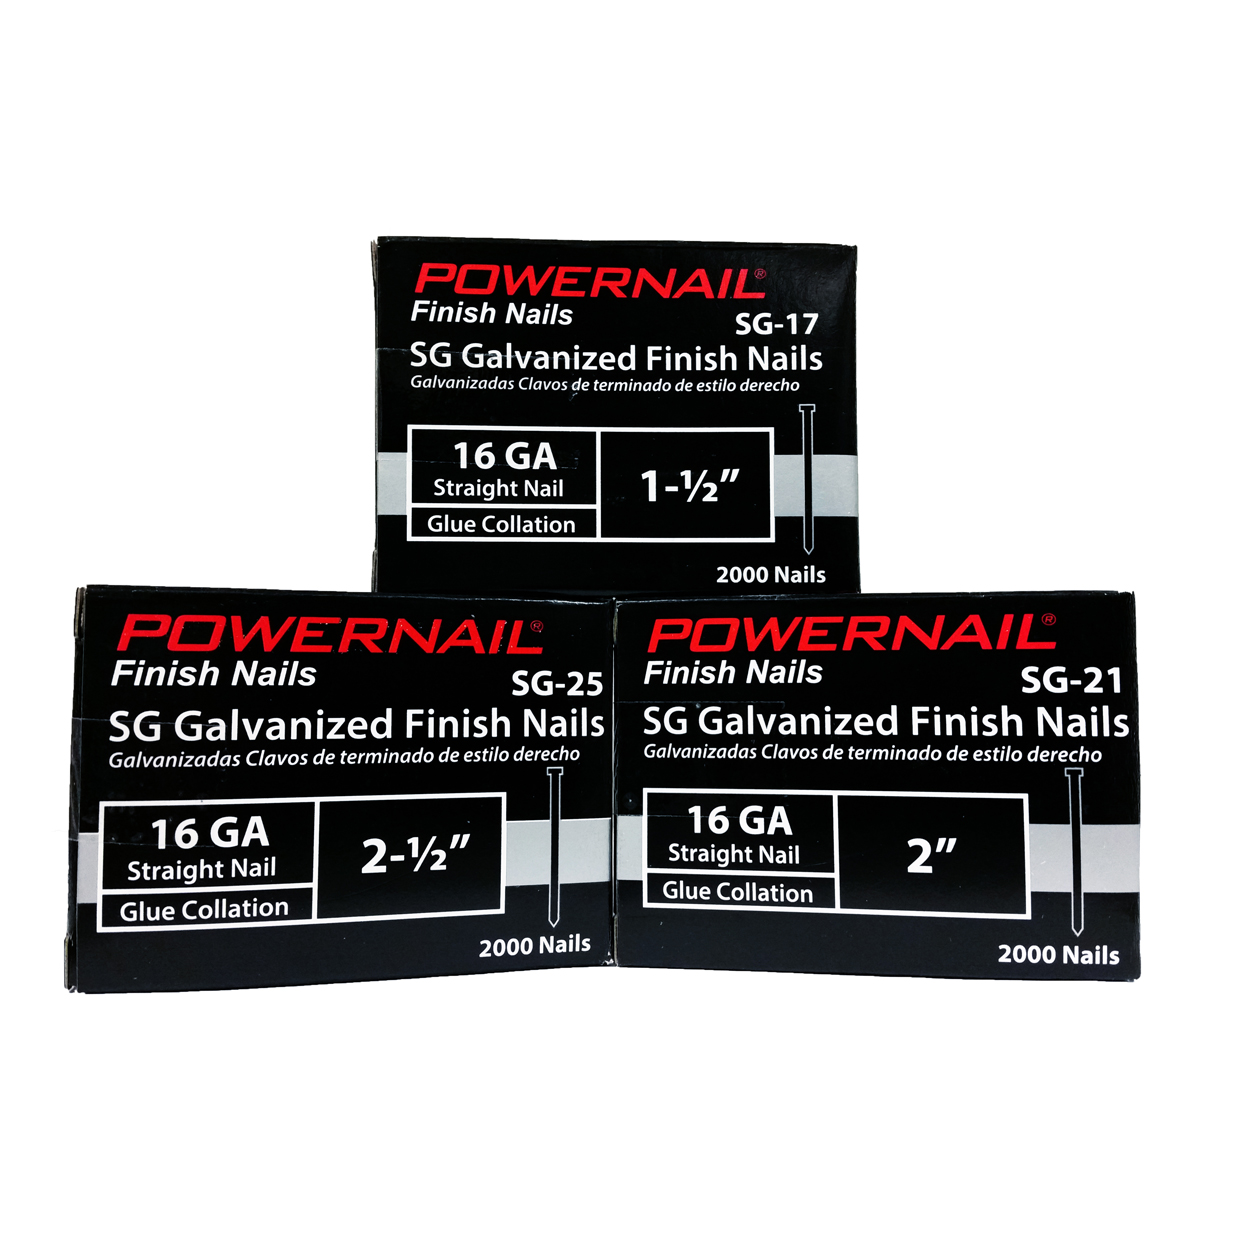 Powernail SG Series Finish Nails